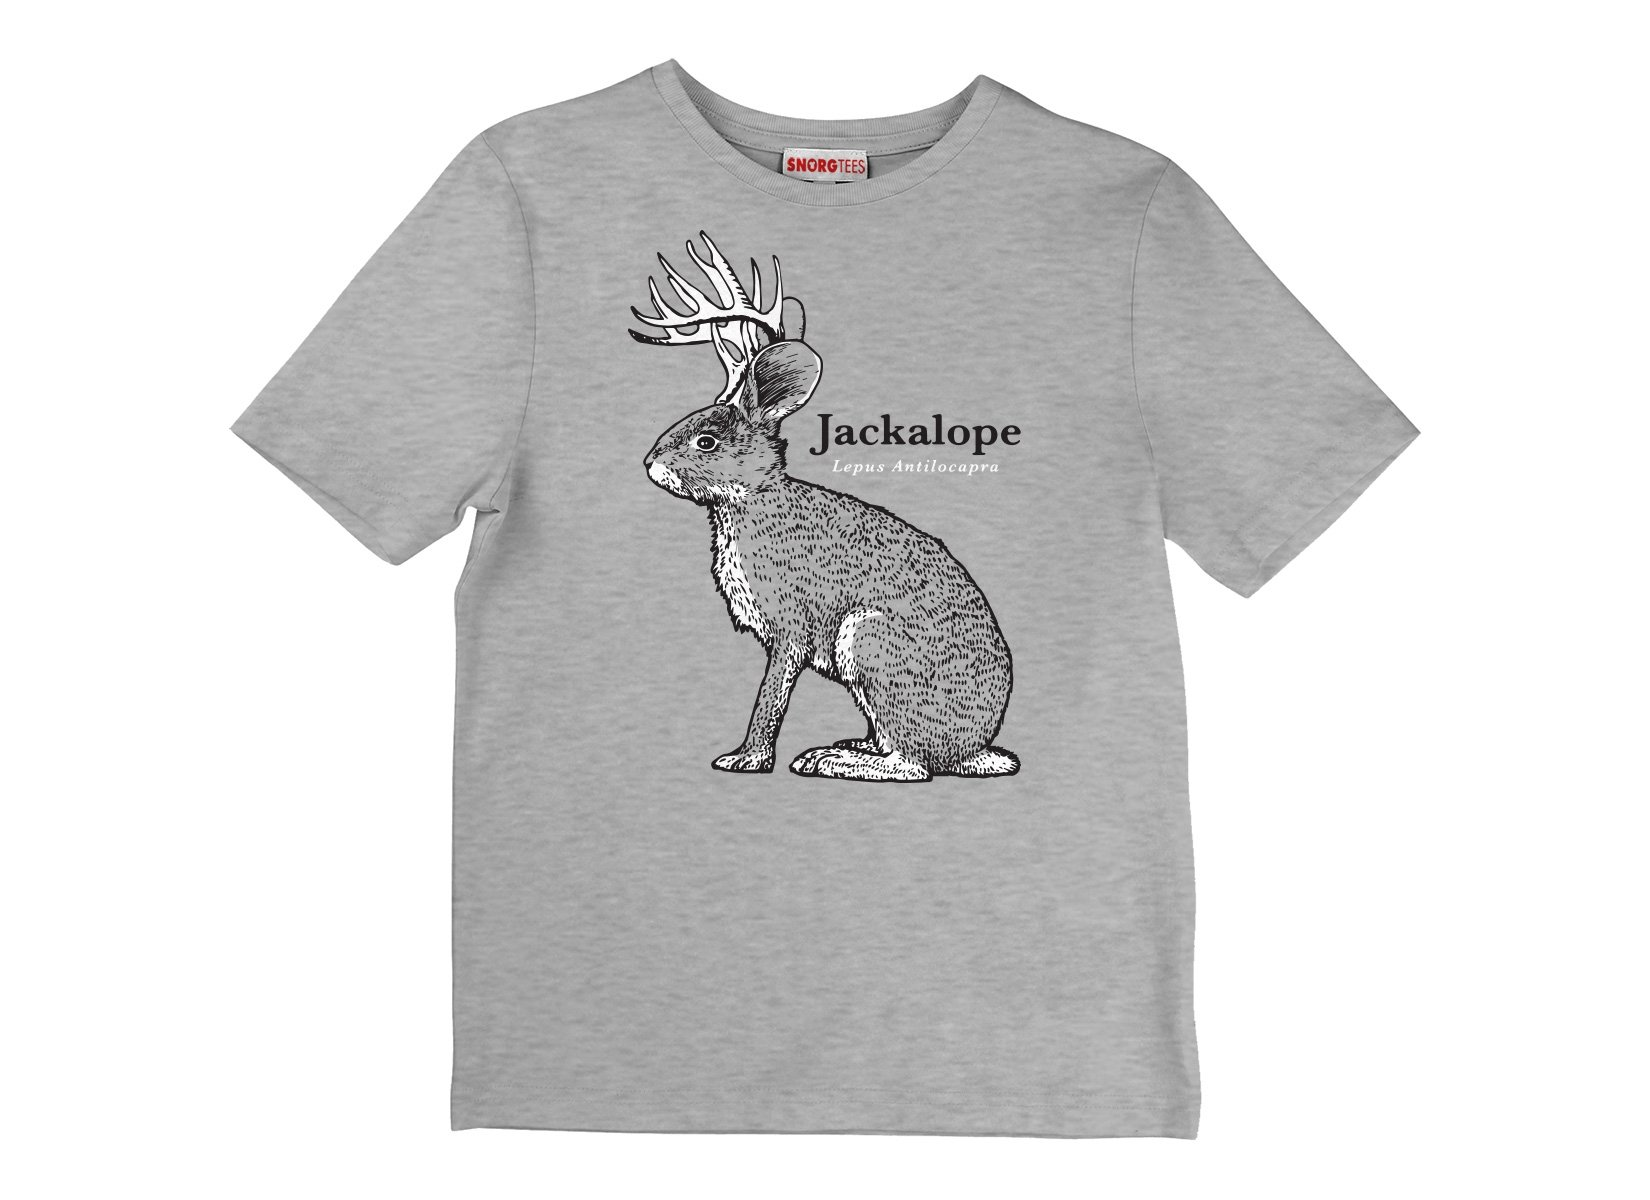 Jackalope on Kids T-Shirt